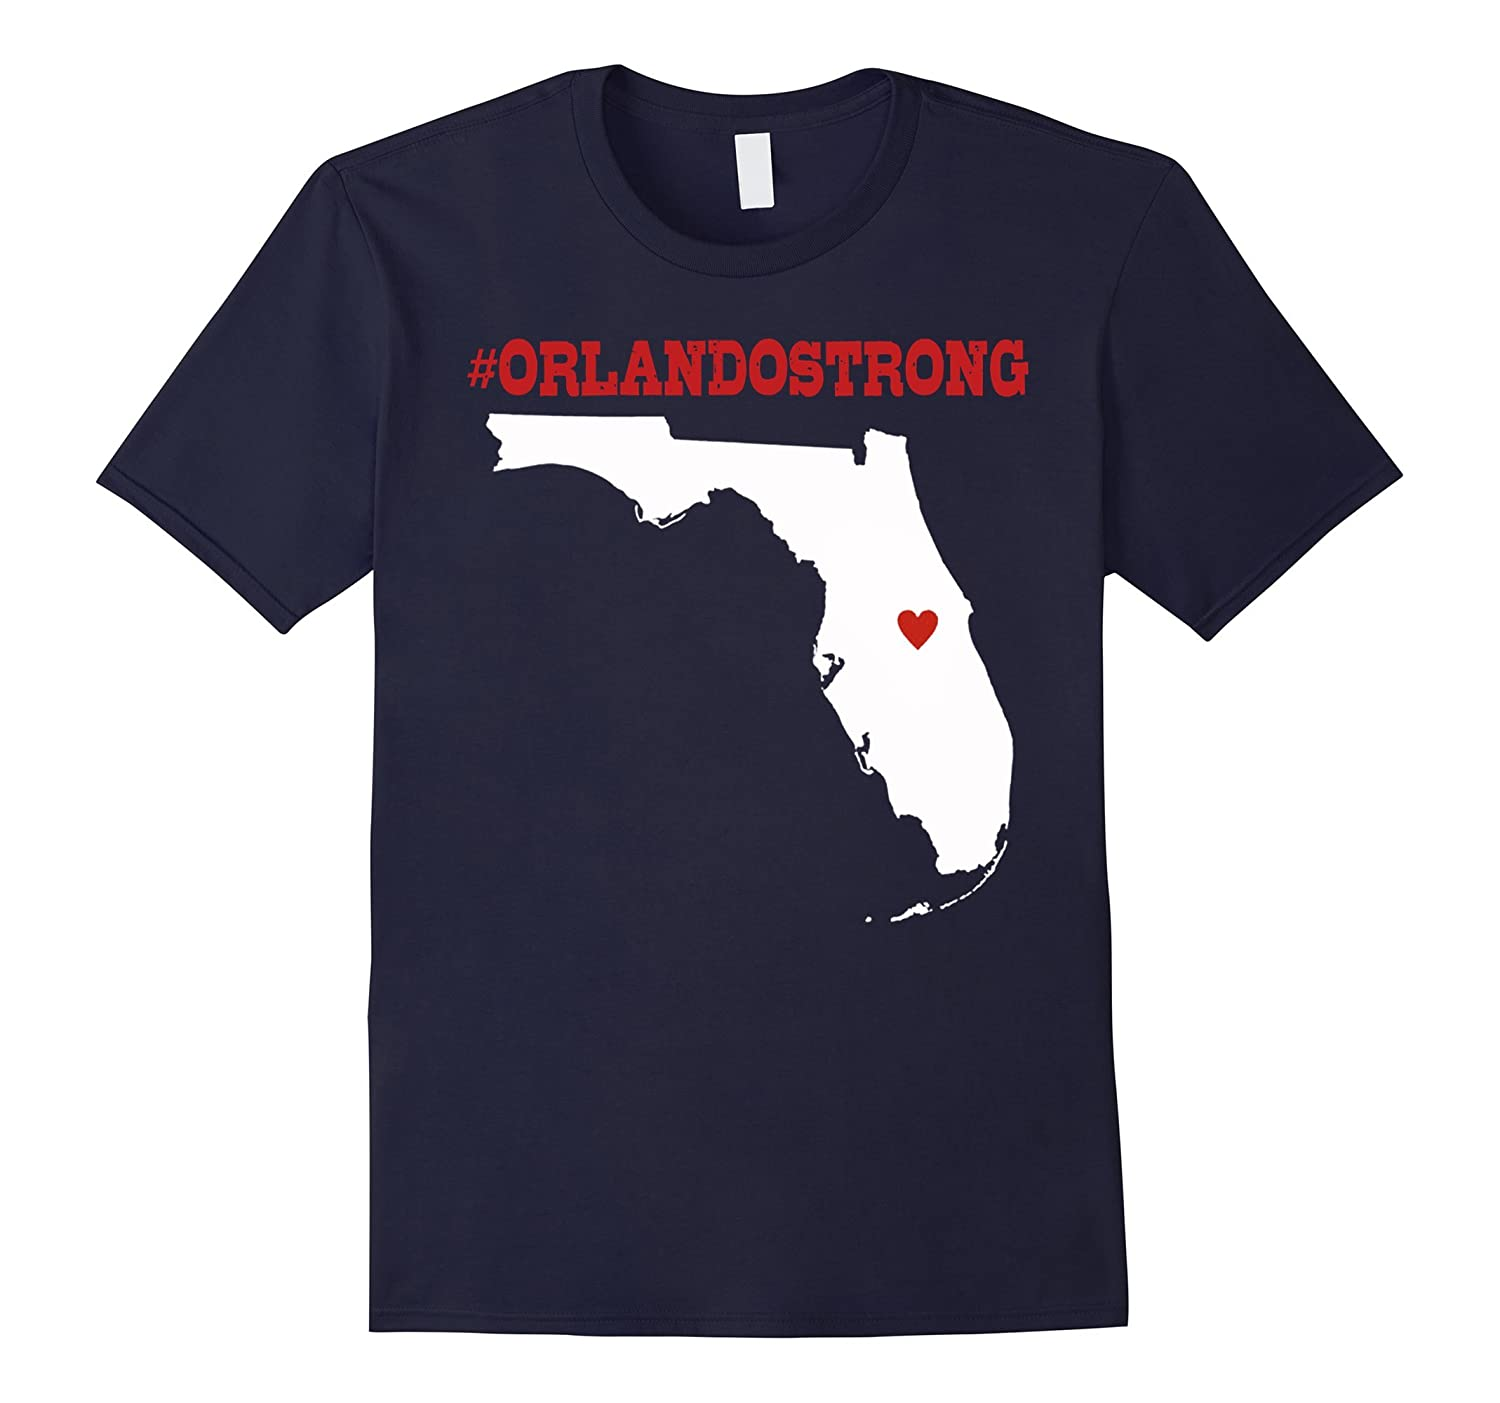 Be strong Orlando - Stand together & share the love T-shirt-BN